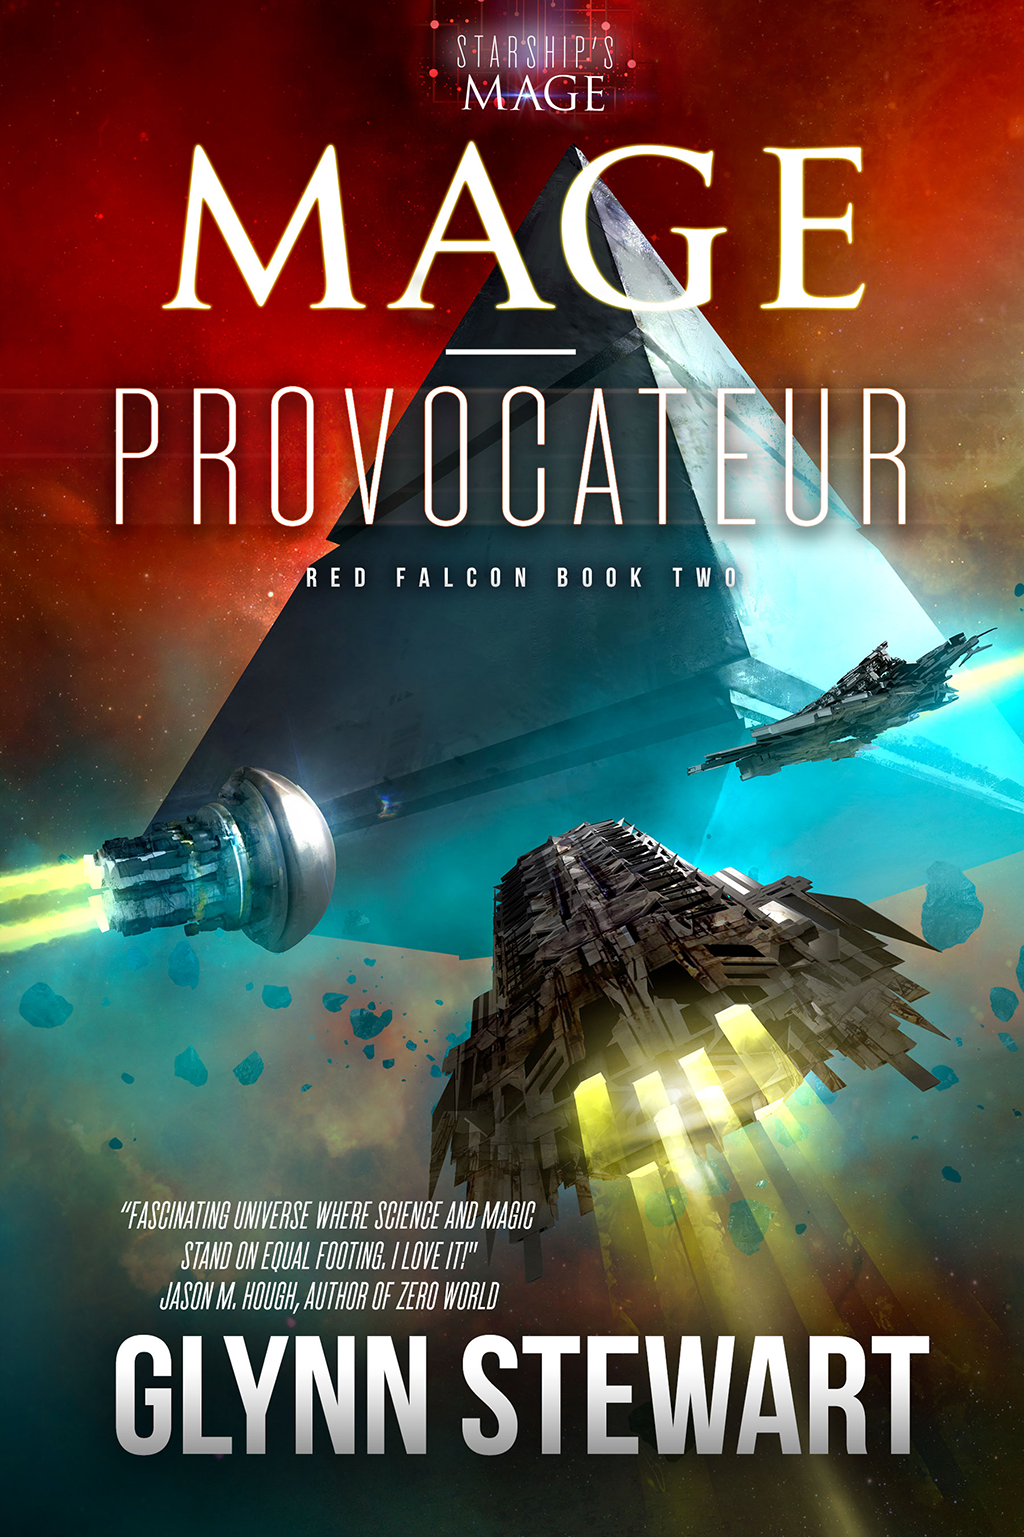 https://www.glynnstewart.com/wp-content/uploads/2018/03/mage-provocateur-eBook-webres.png